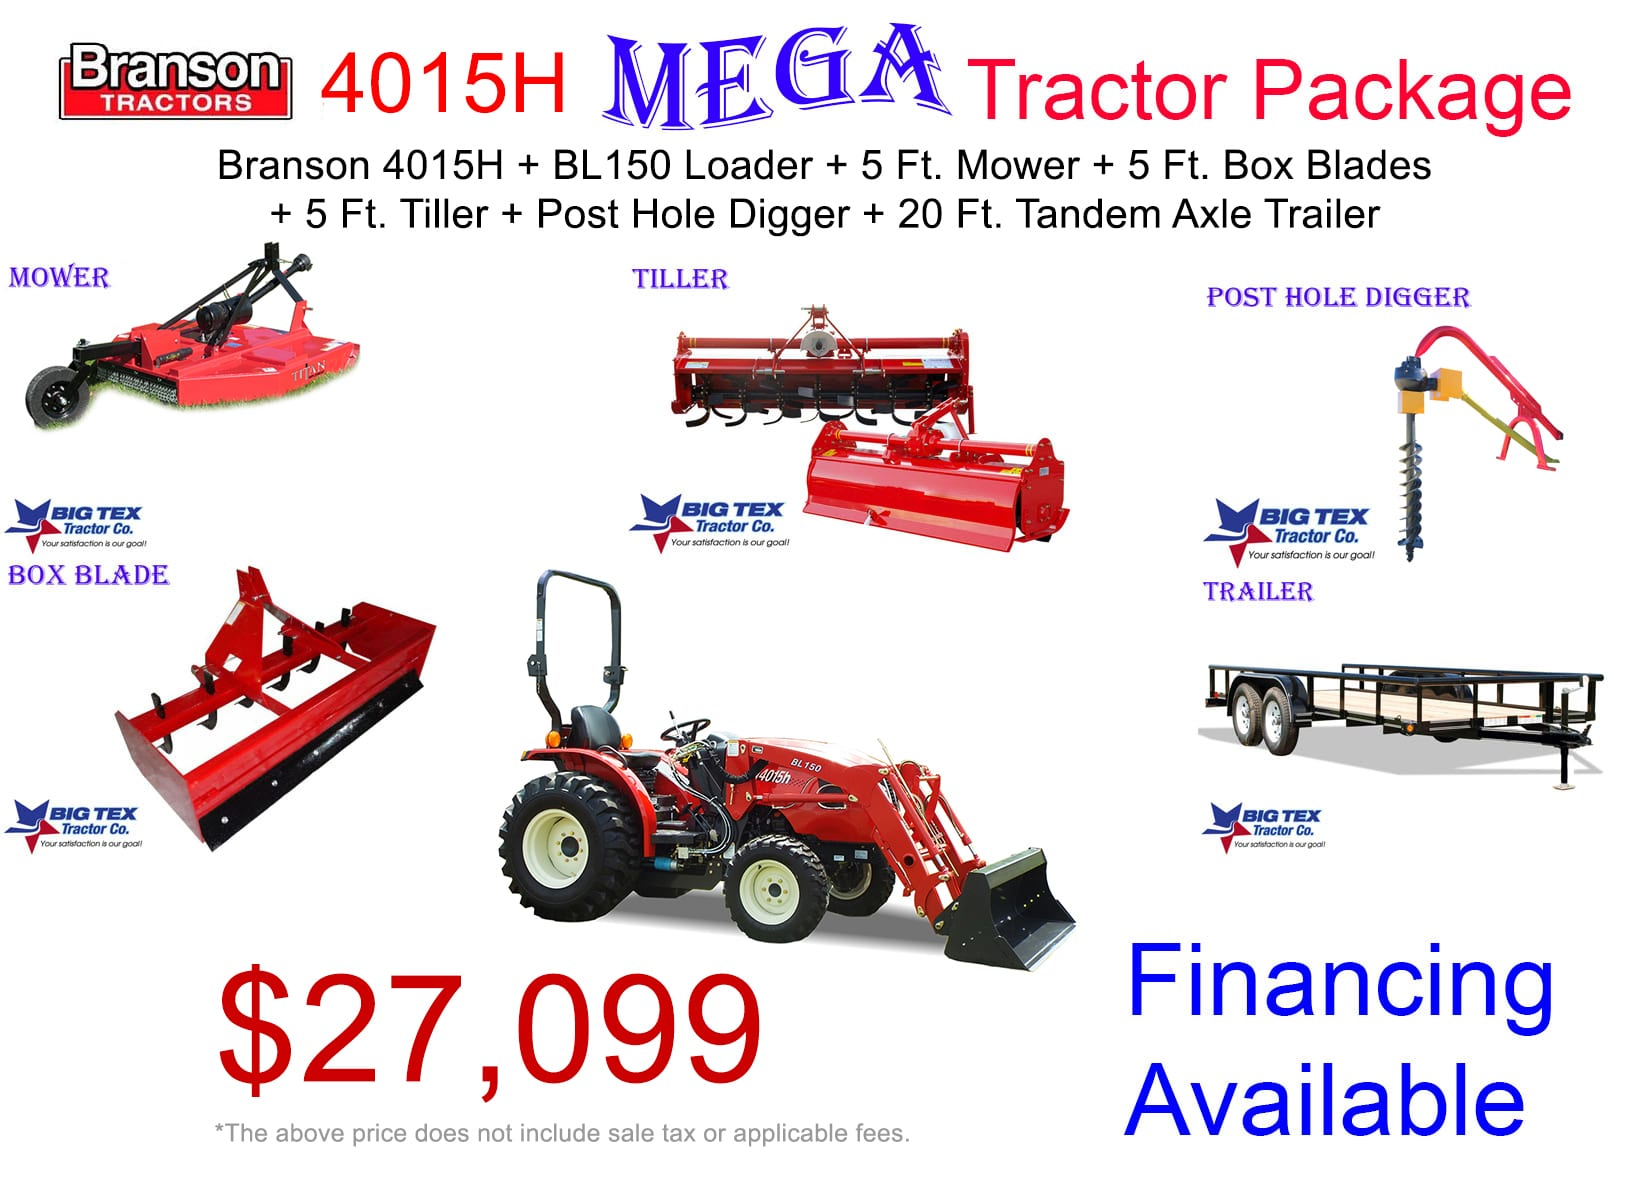 2019 - 4015h mega tractor package